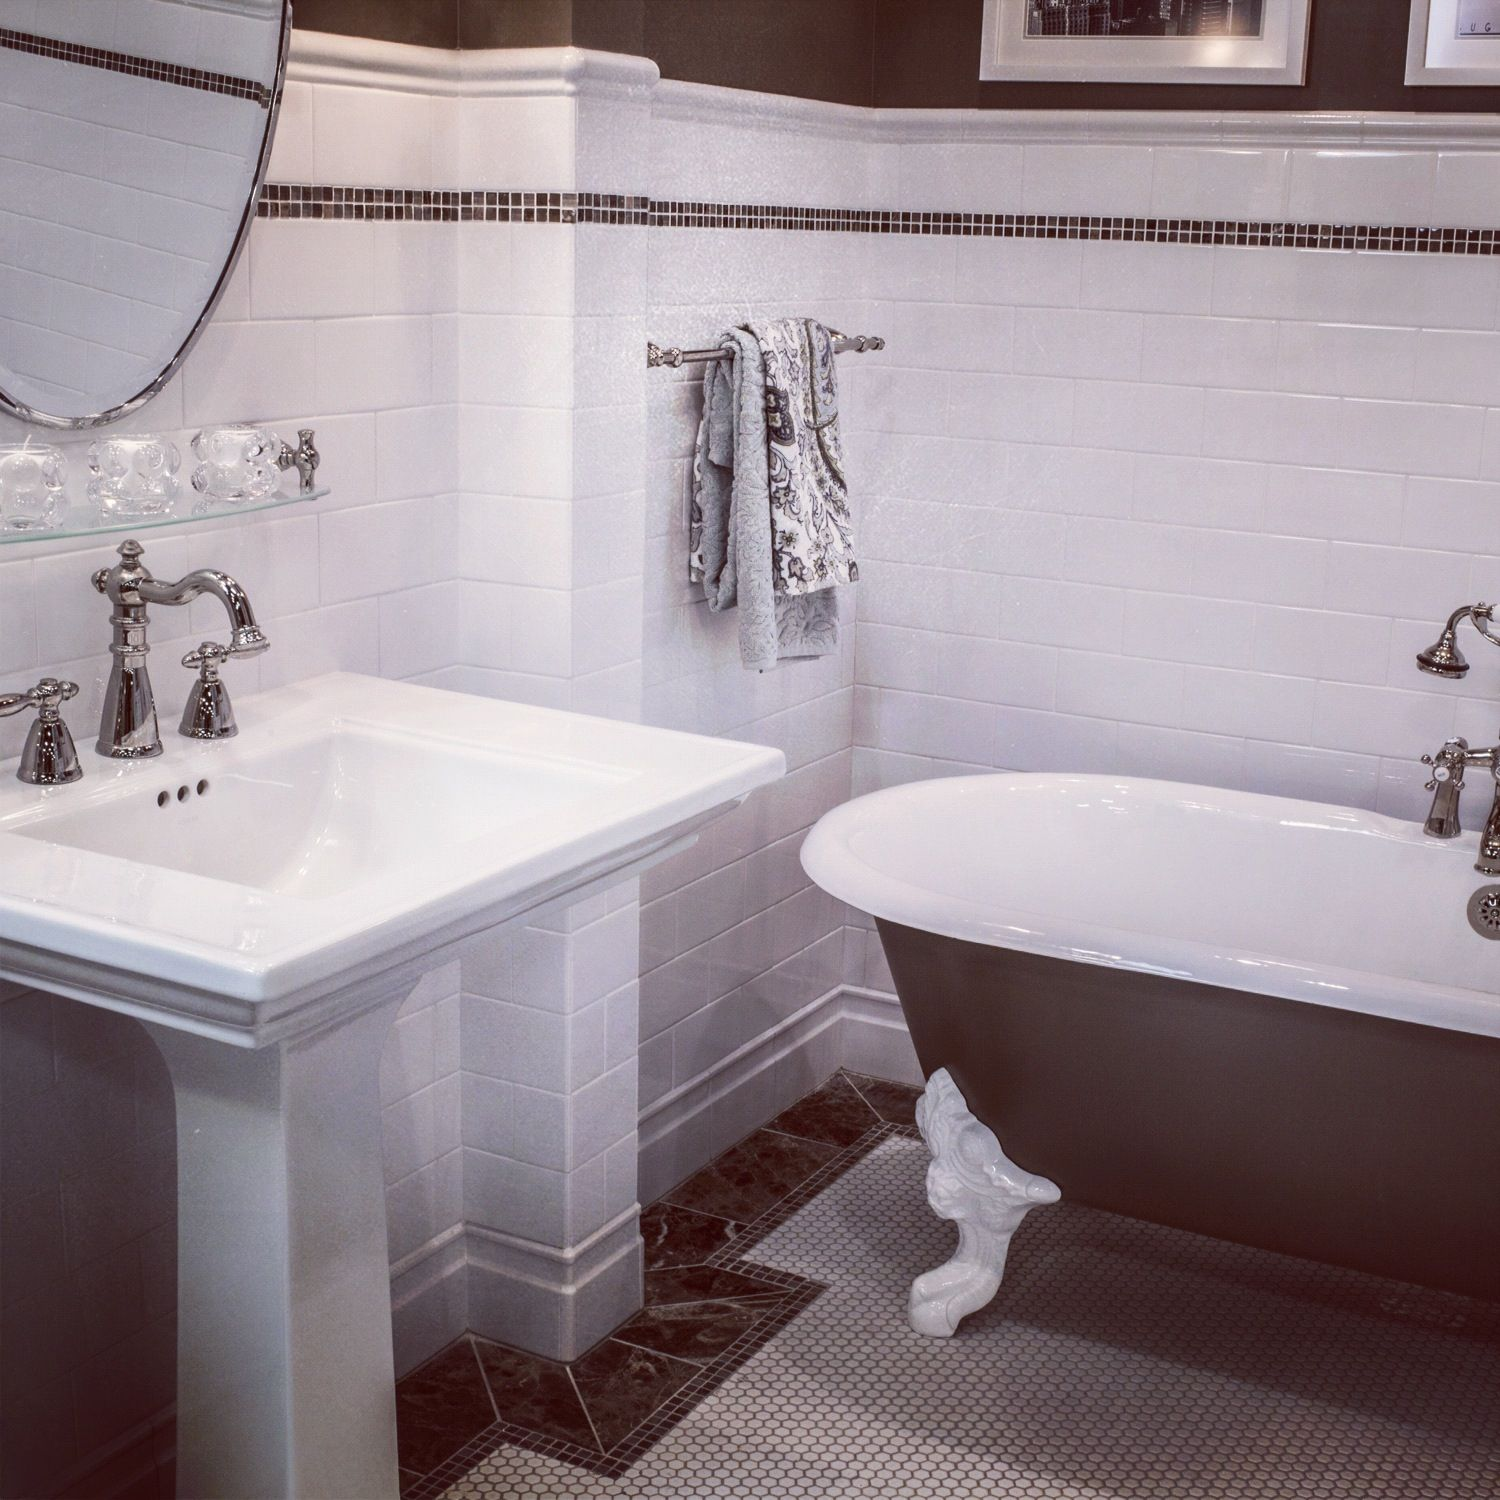 Traditional white subway tile is a bathroom design classic ...